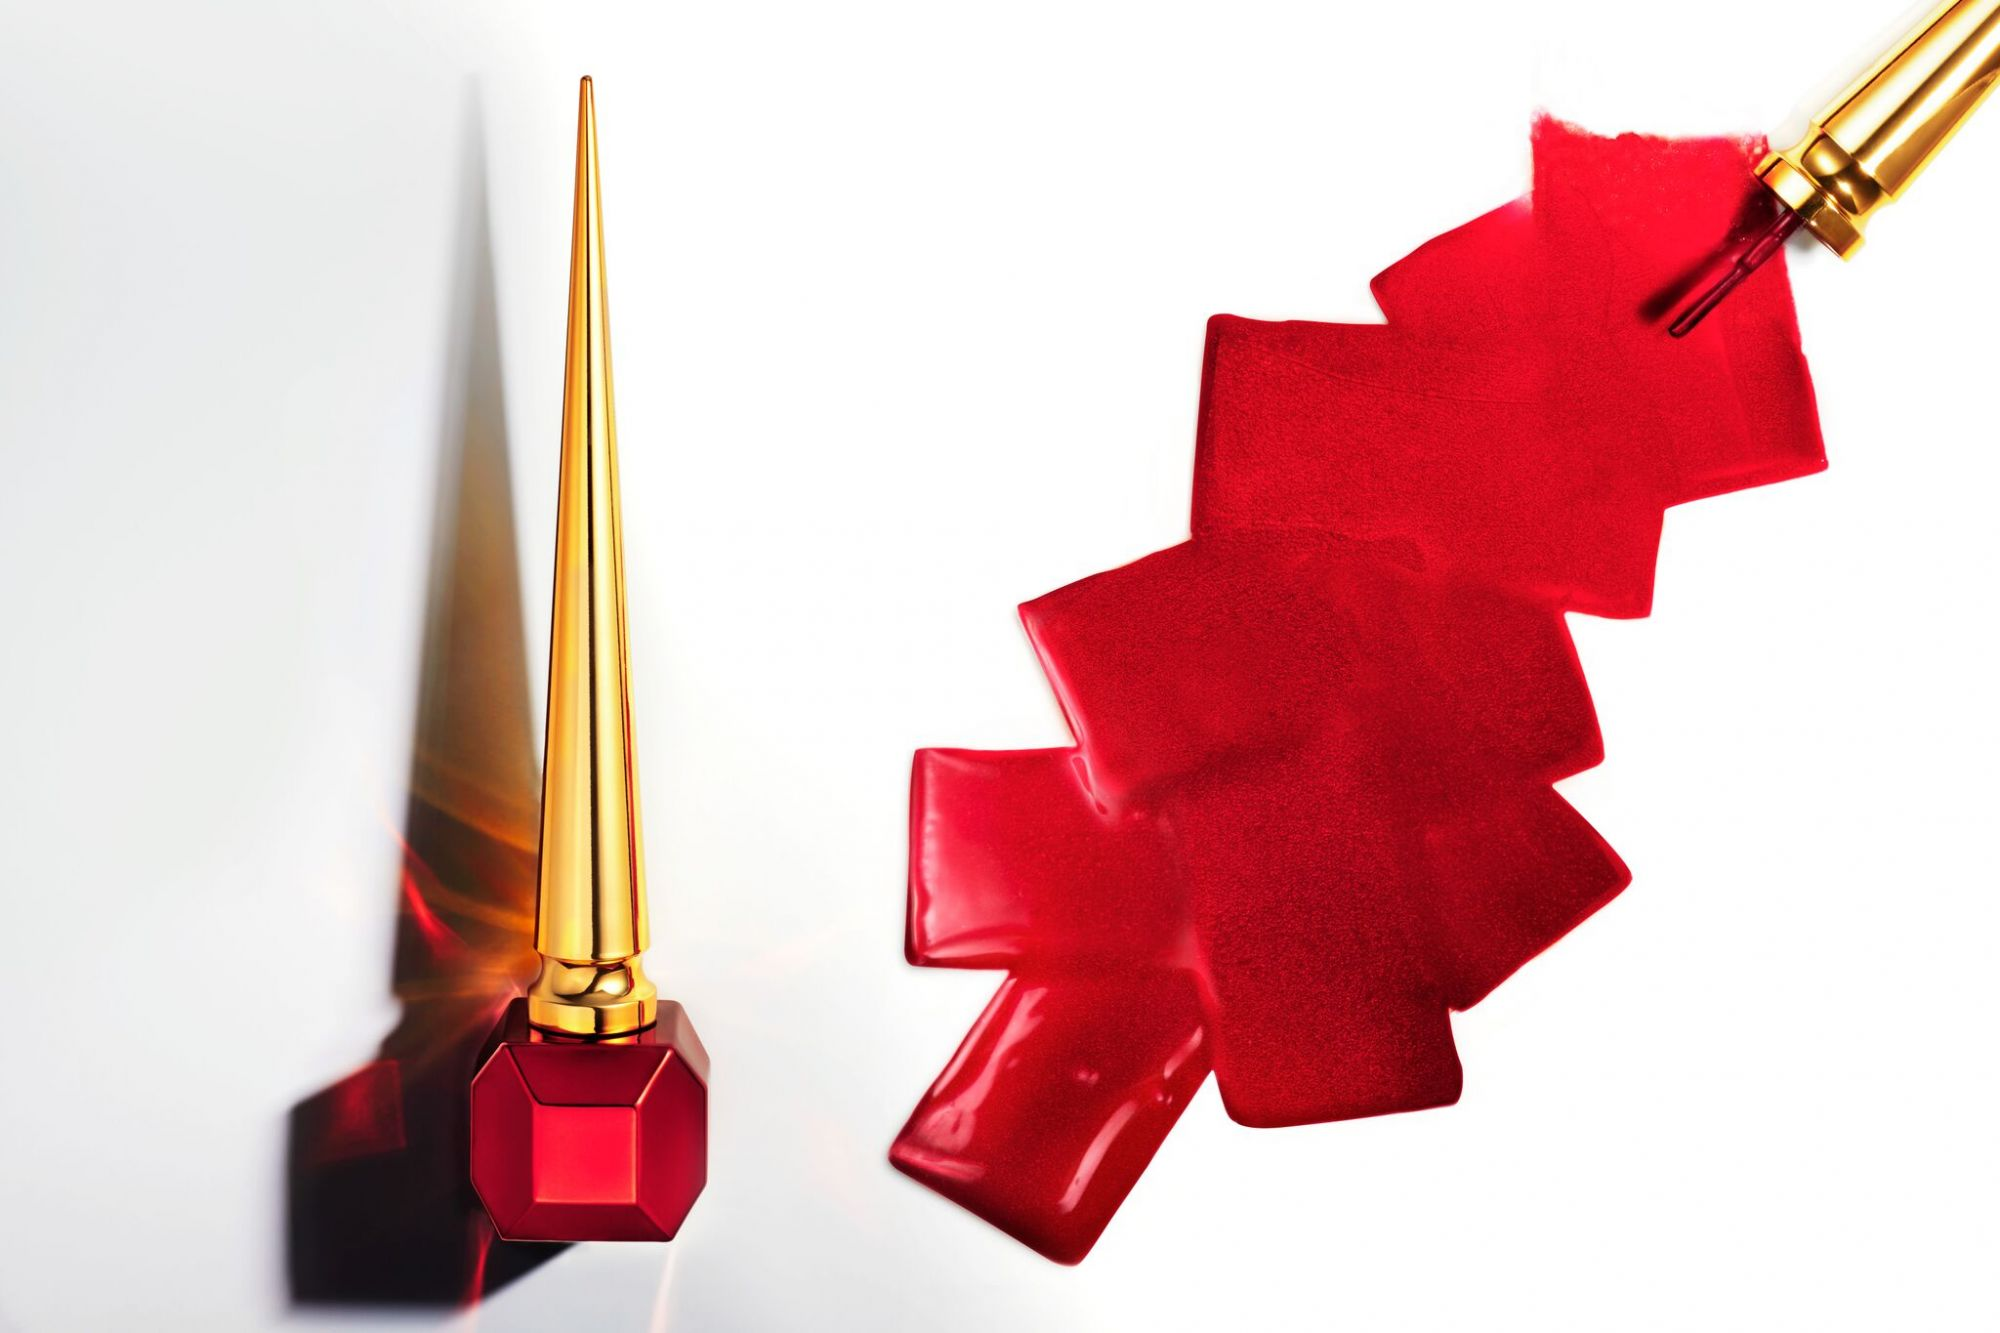 A Christian Louboutin Manicure More Pricey Than Their Shoes